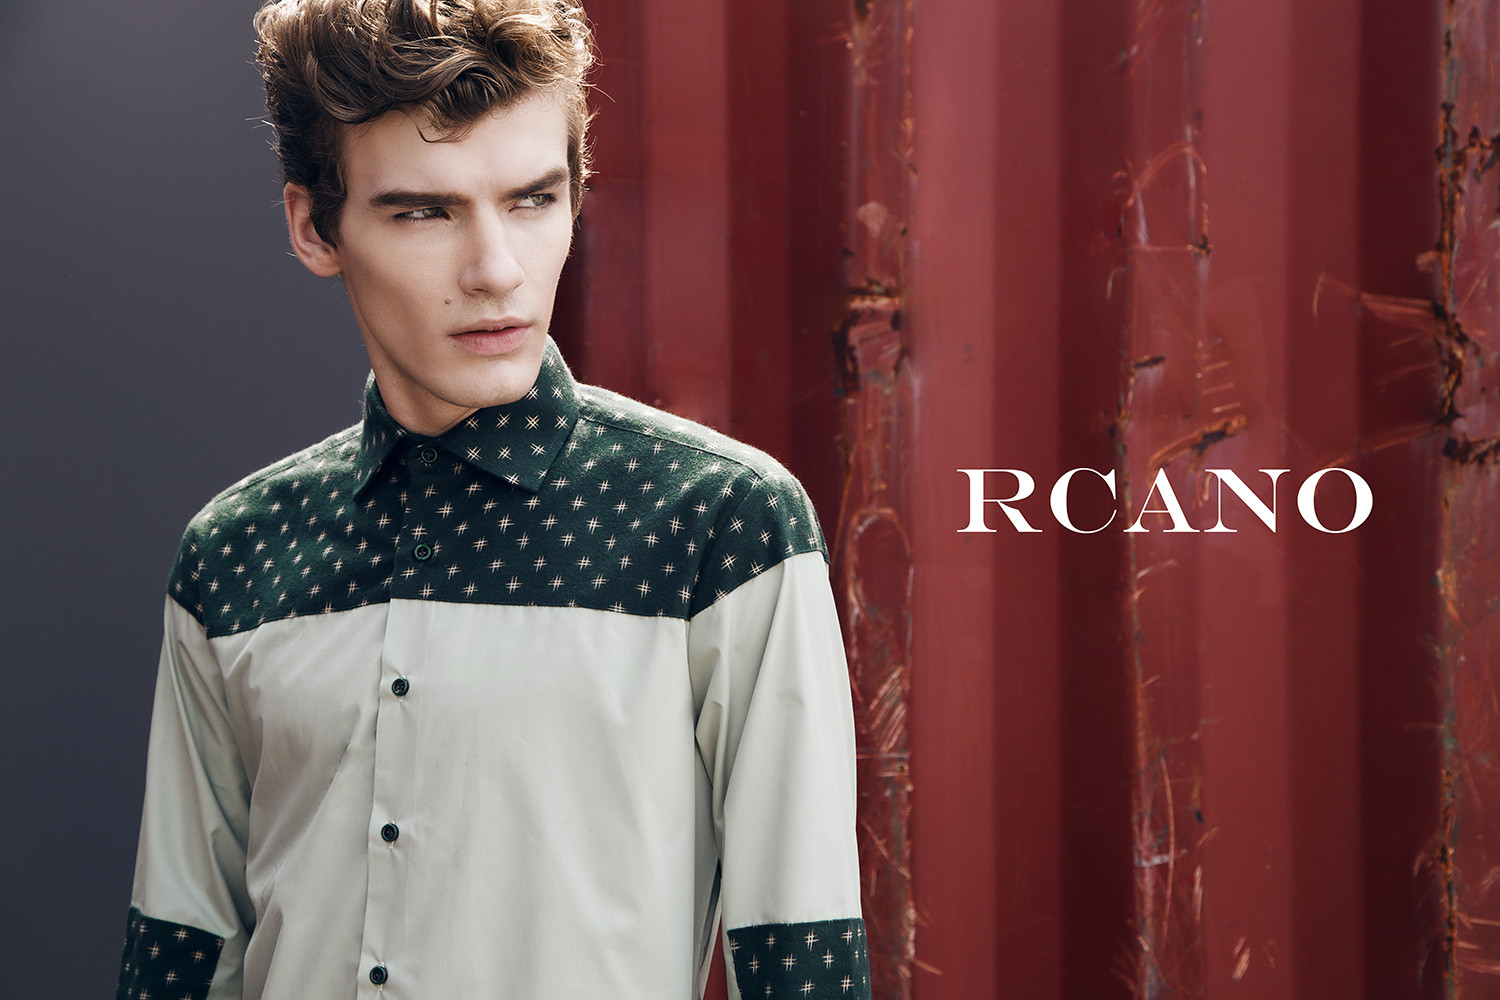 RCANO FW15-3 HIGH RES LOGO.jpg